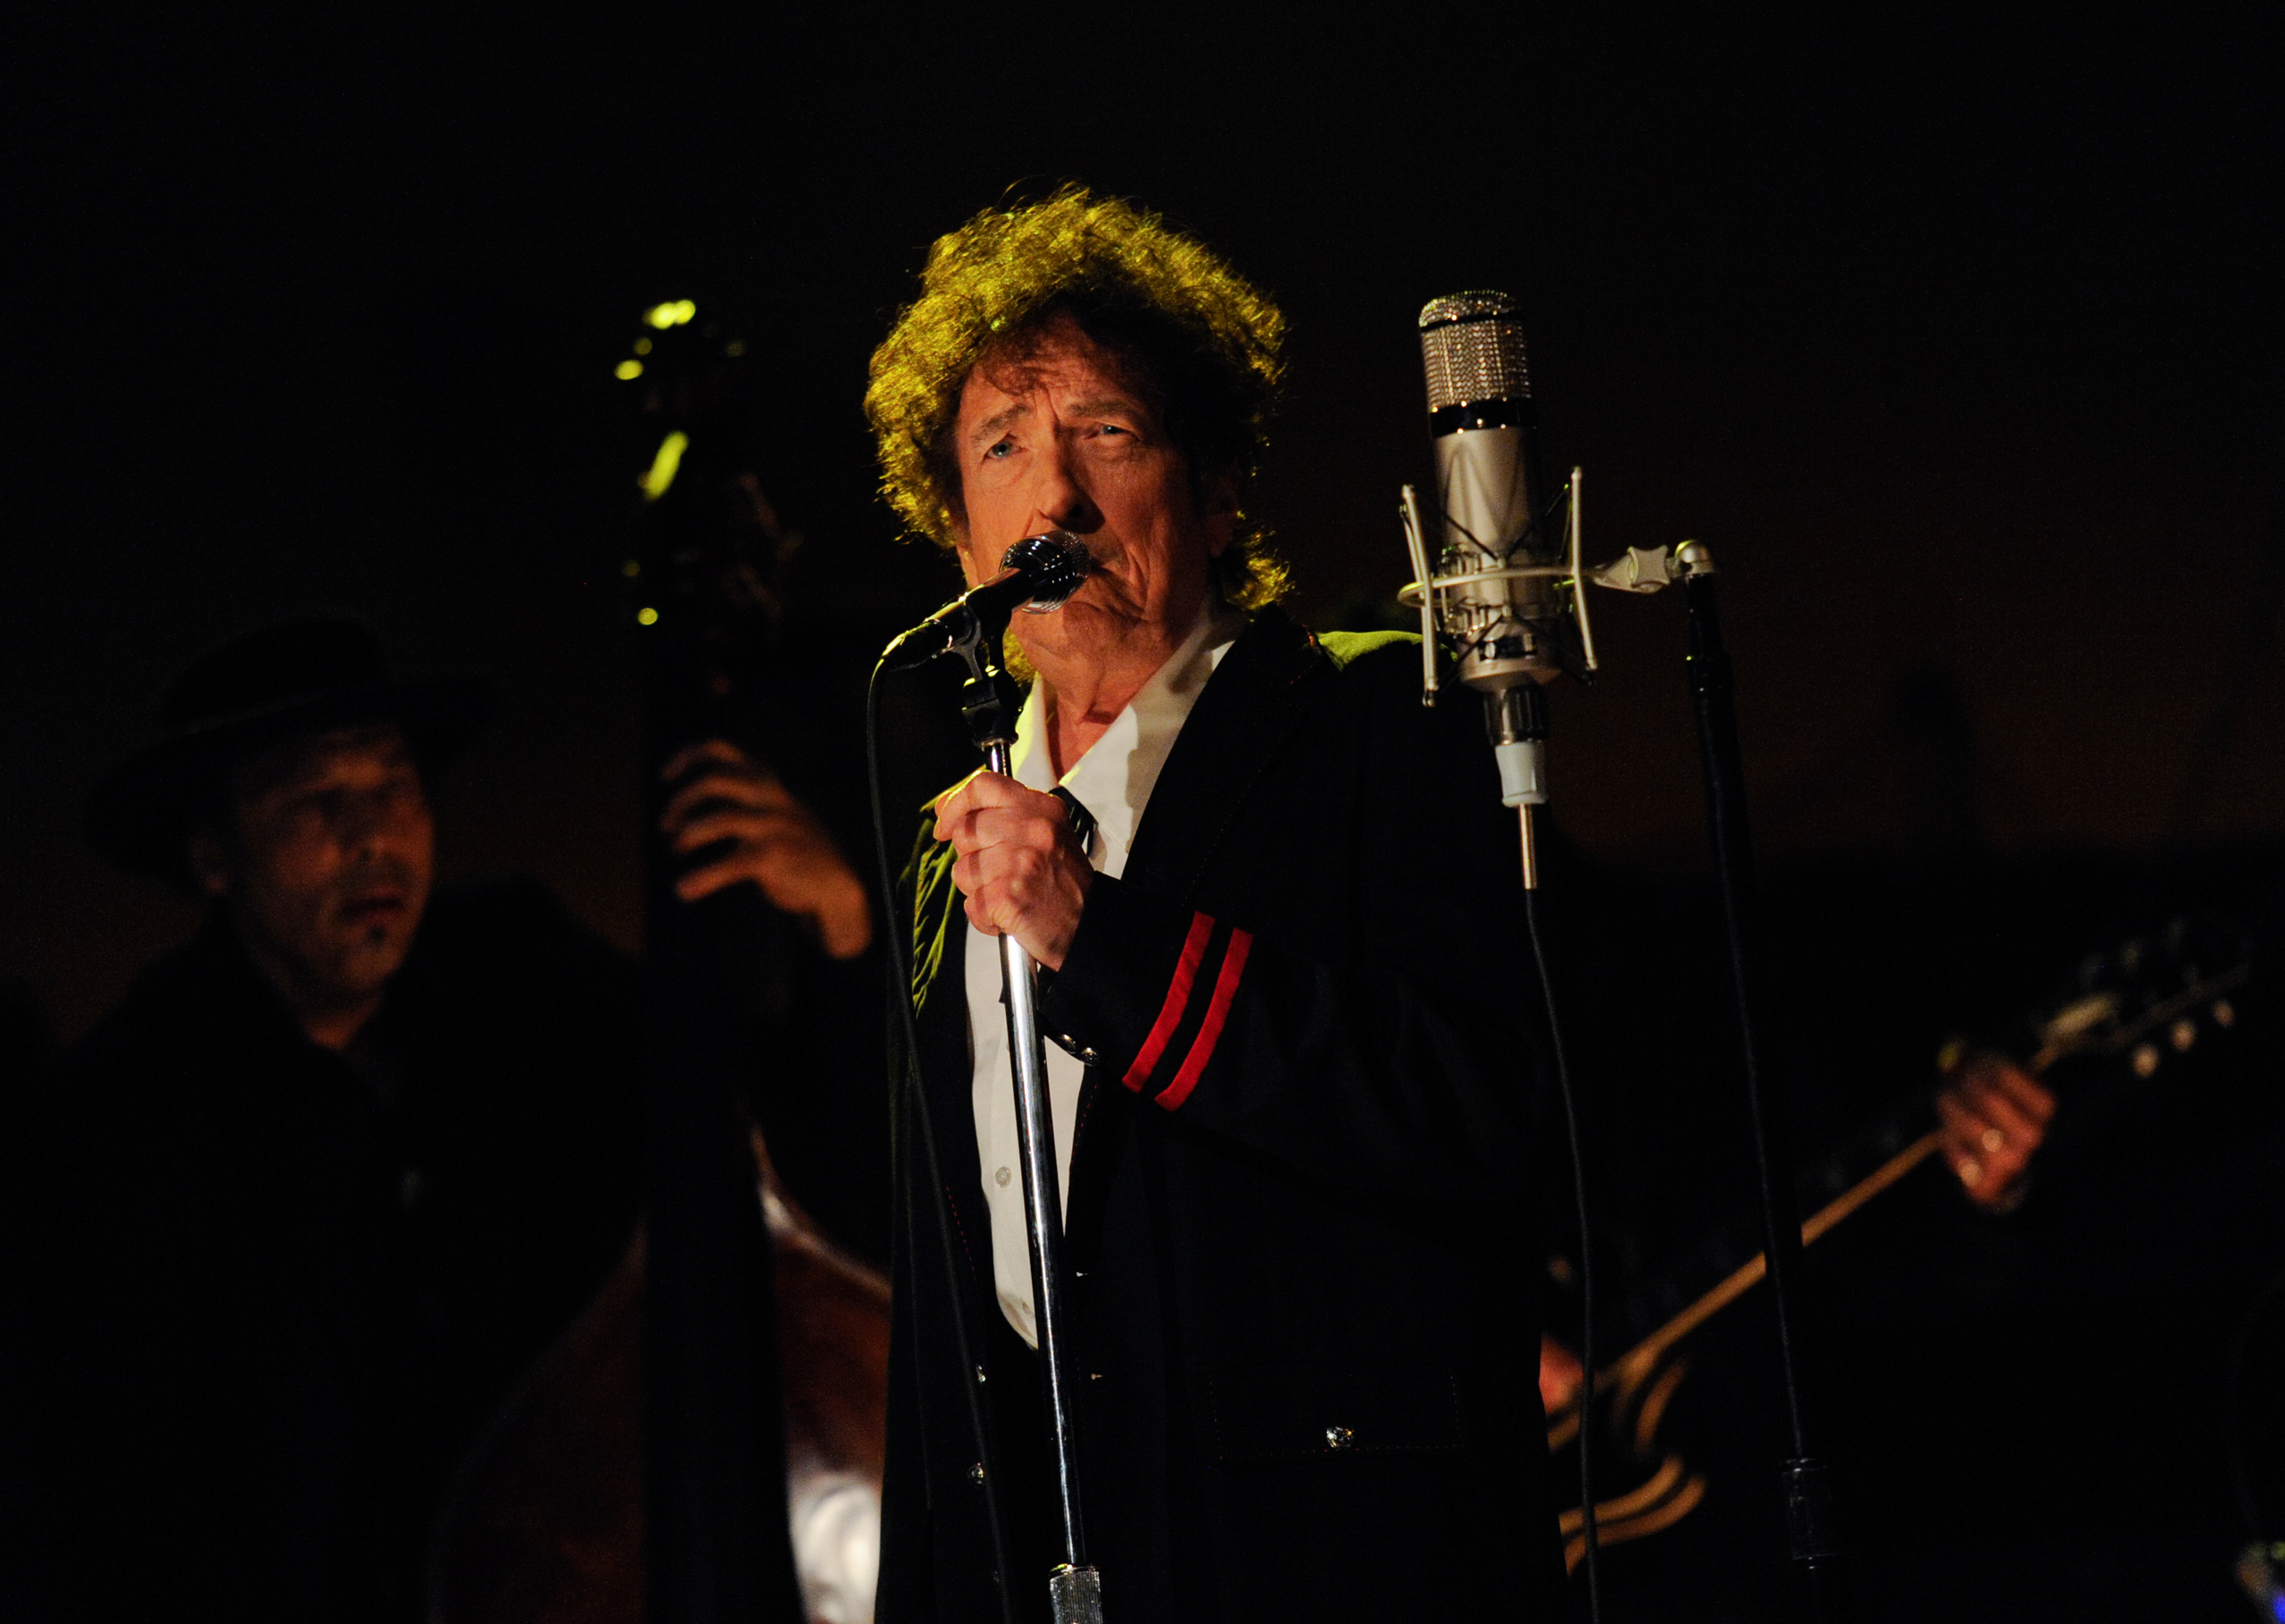 Bob Dylan performs on the Late Show with David Letterman in New York on May 19, 2015.